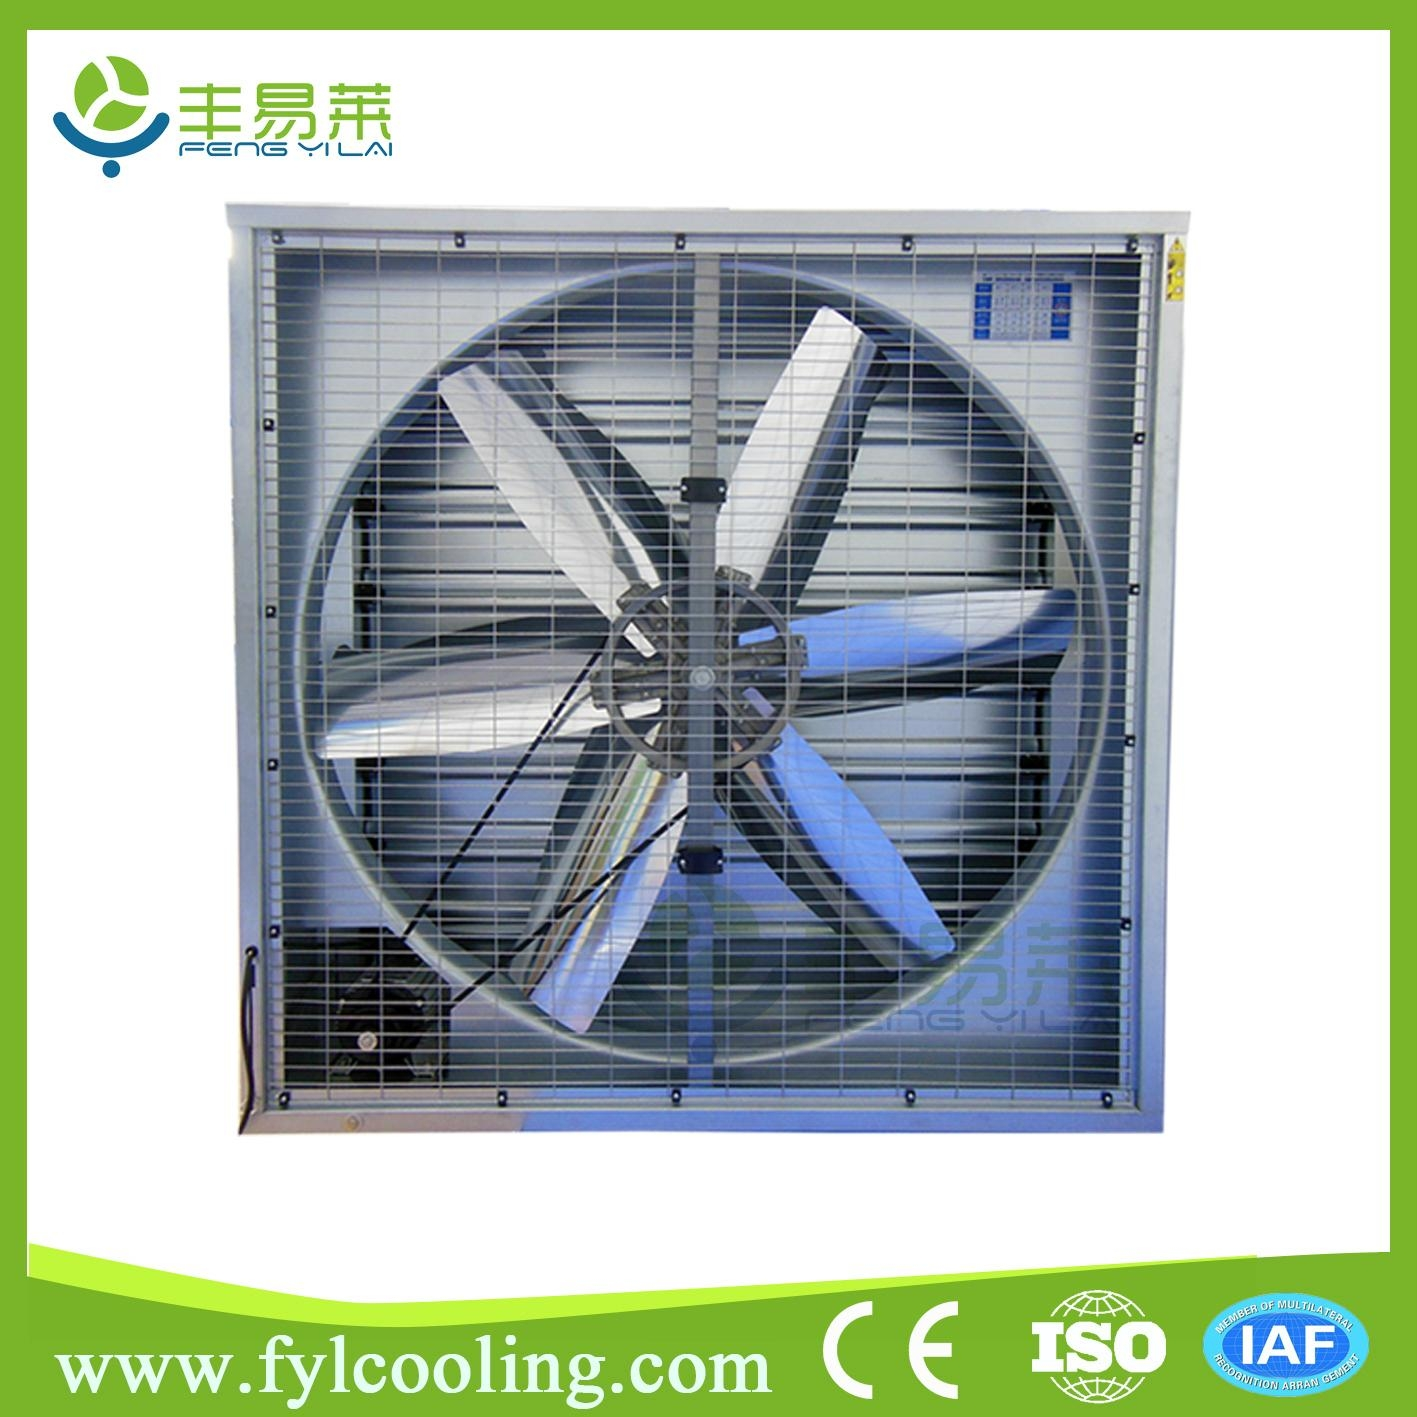 2000 Cfm Fan : Cfm thermostat controlled smoking room industrial